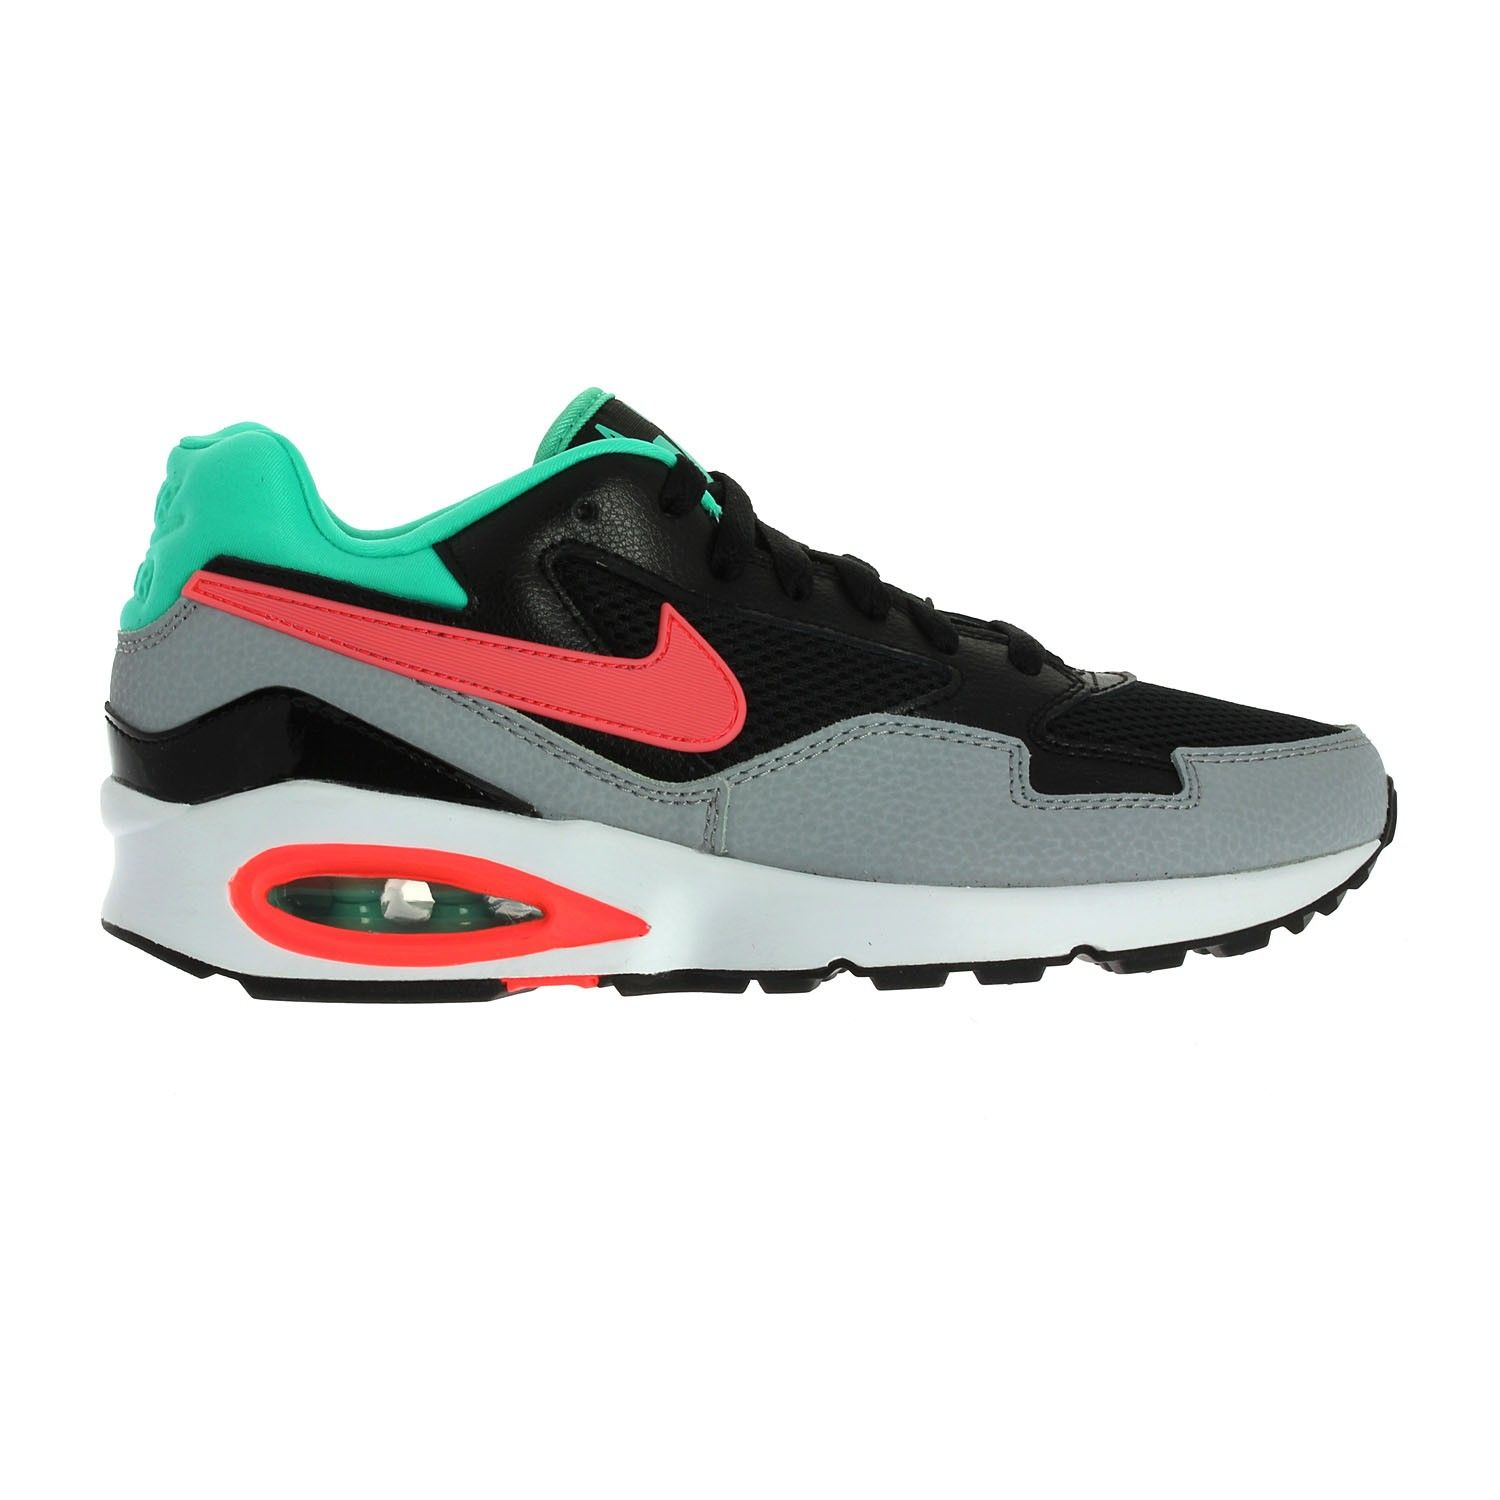 Women's Nike Air Max ST shoe blends the iconic Air Max design with a  combination upper for durability and classic style.